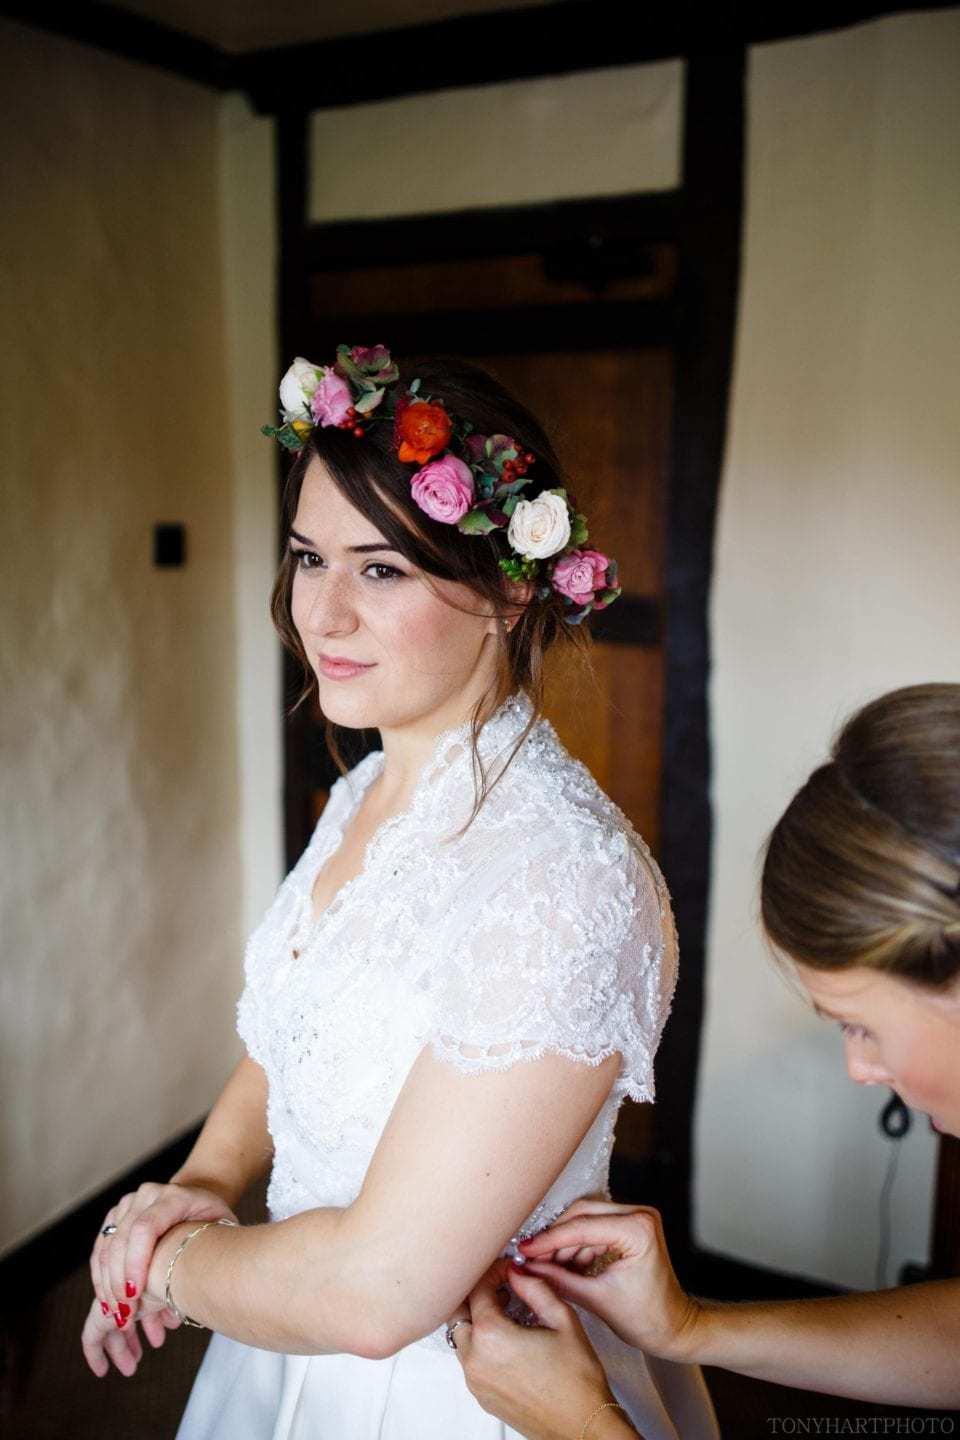 Ali wearing her beautiful flower crown as her bridesmaids make the final adjustments to her dress